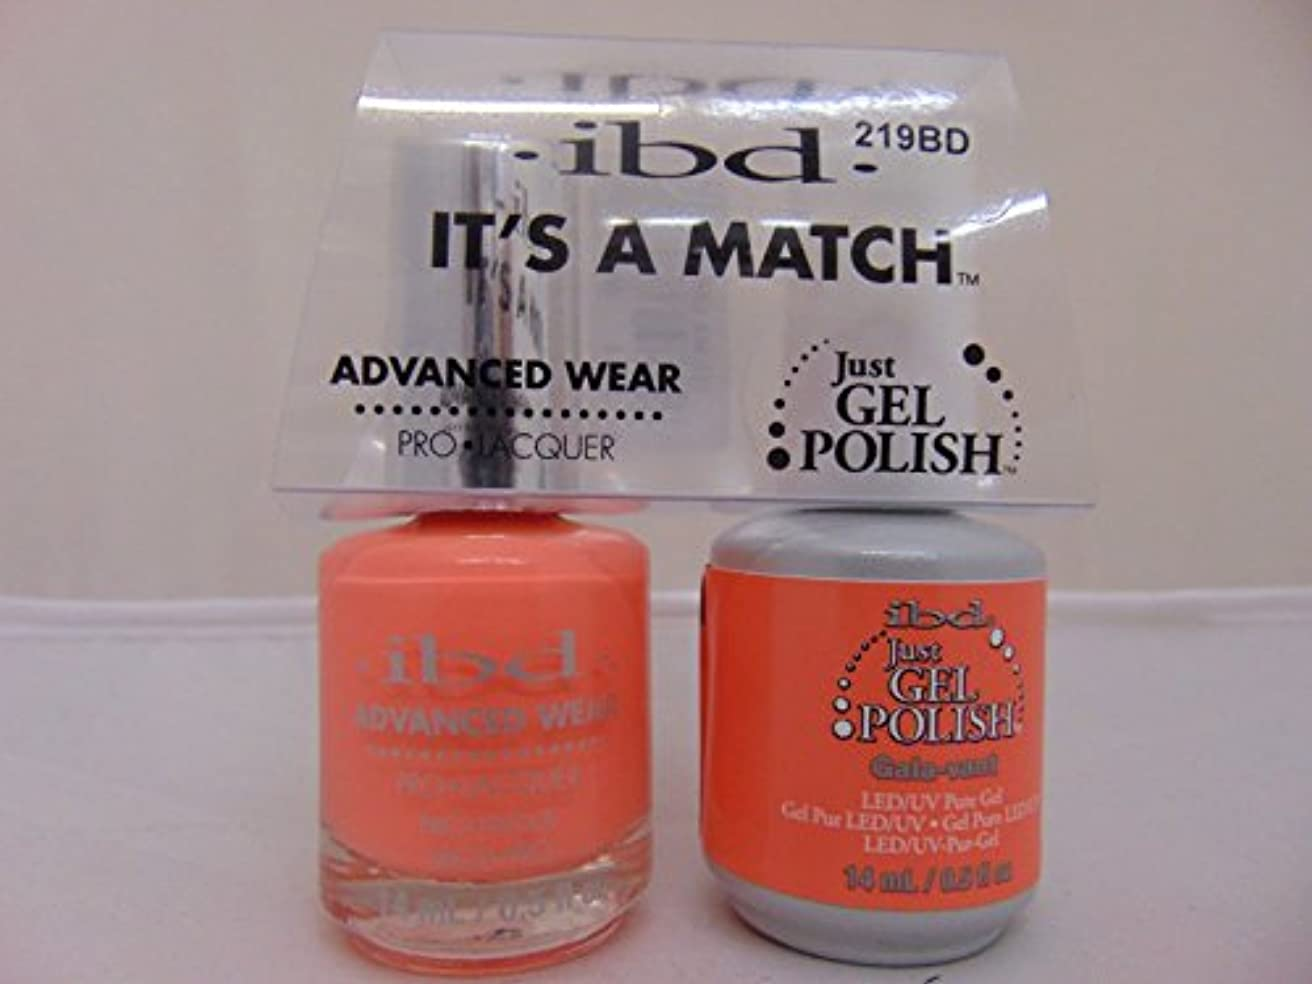 哀れな些細な落花生ibd - It's A Match -Duo Pack- Gala-vant - 14 mL / 0.5 oz Each